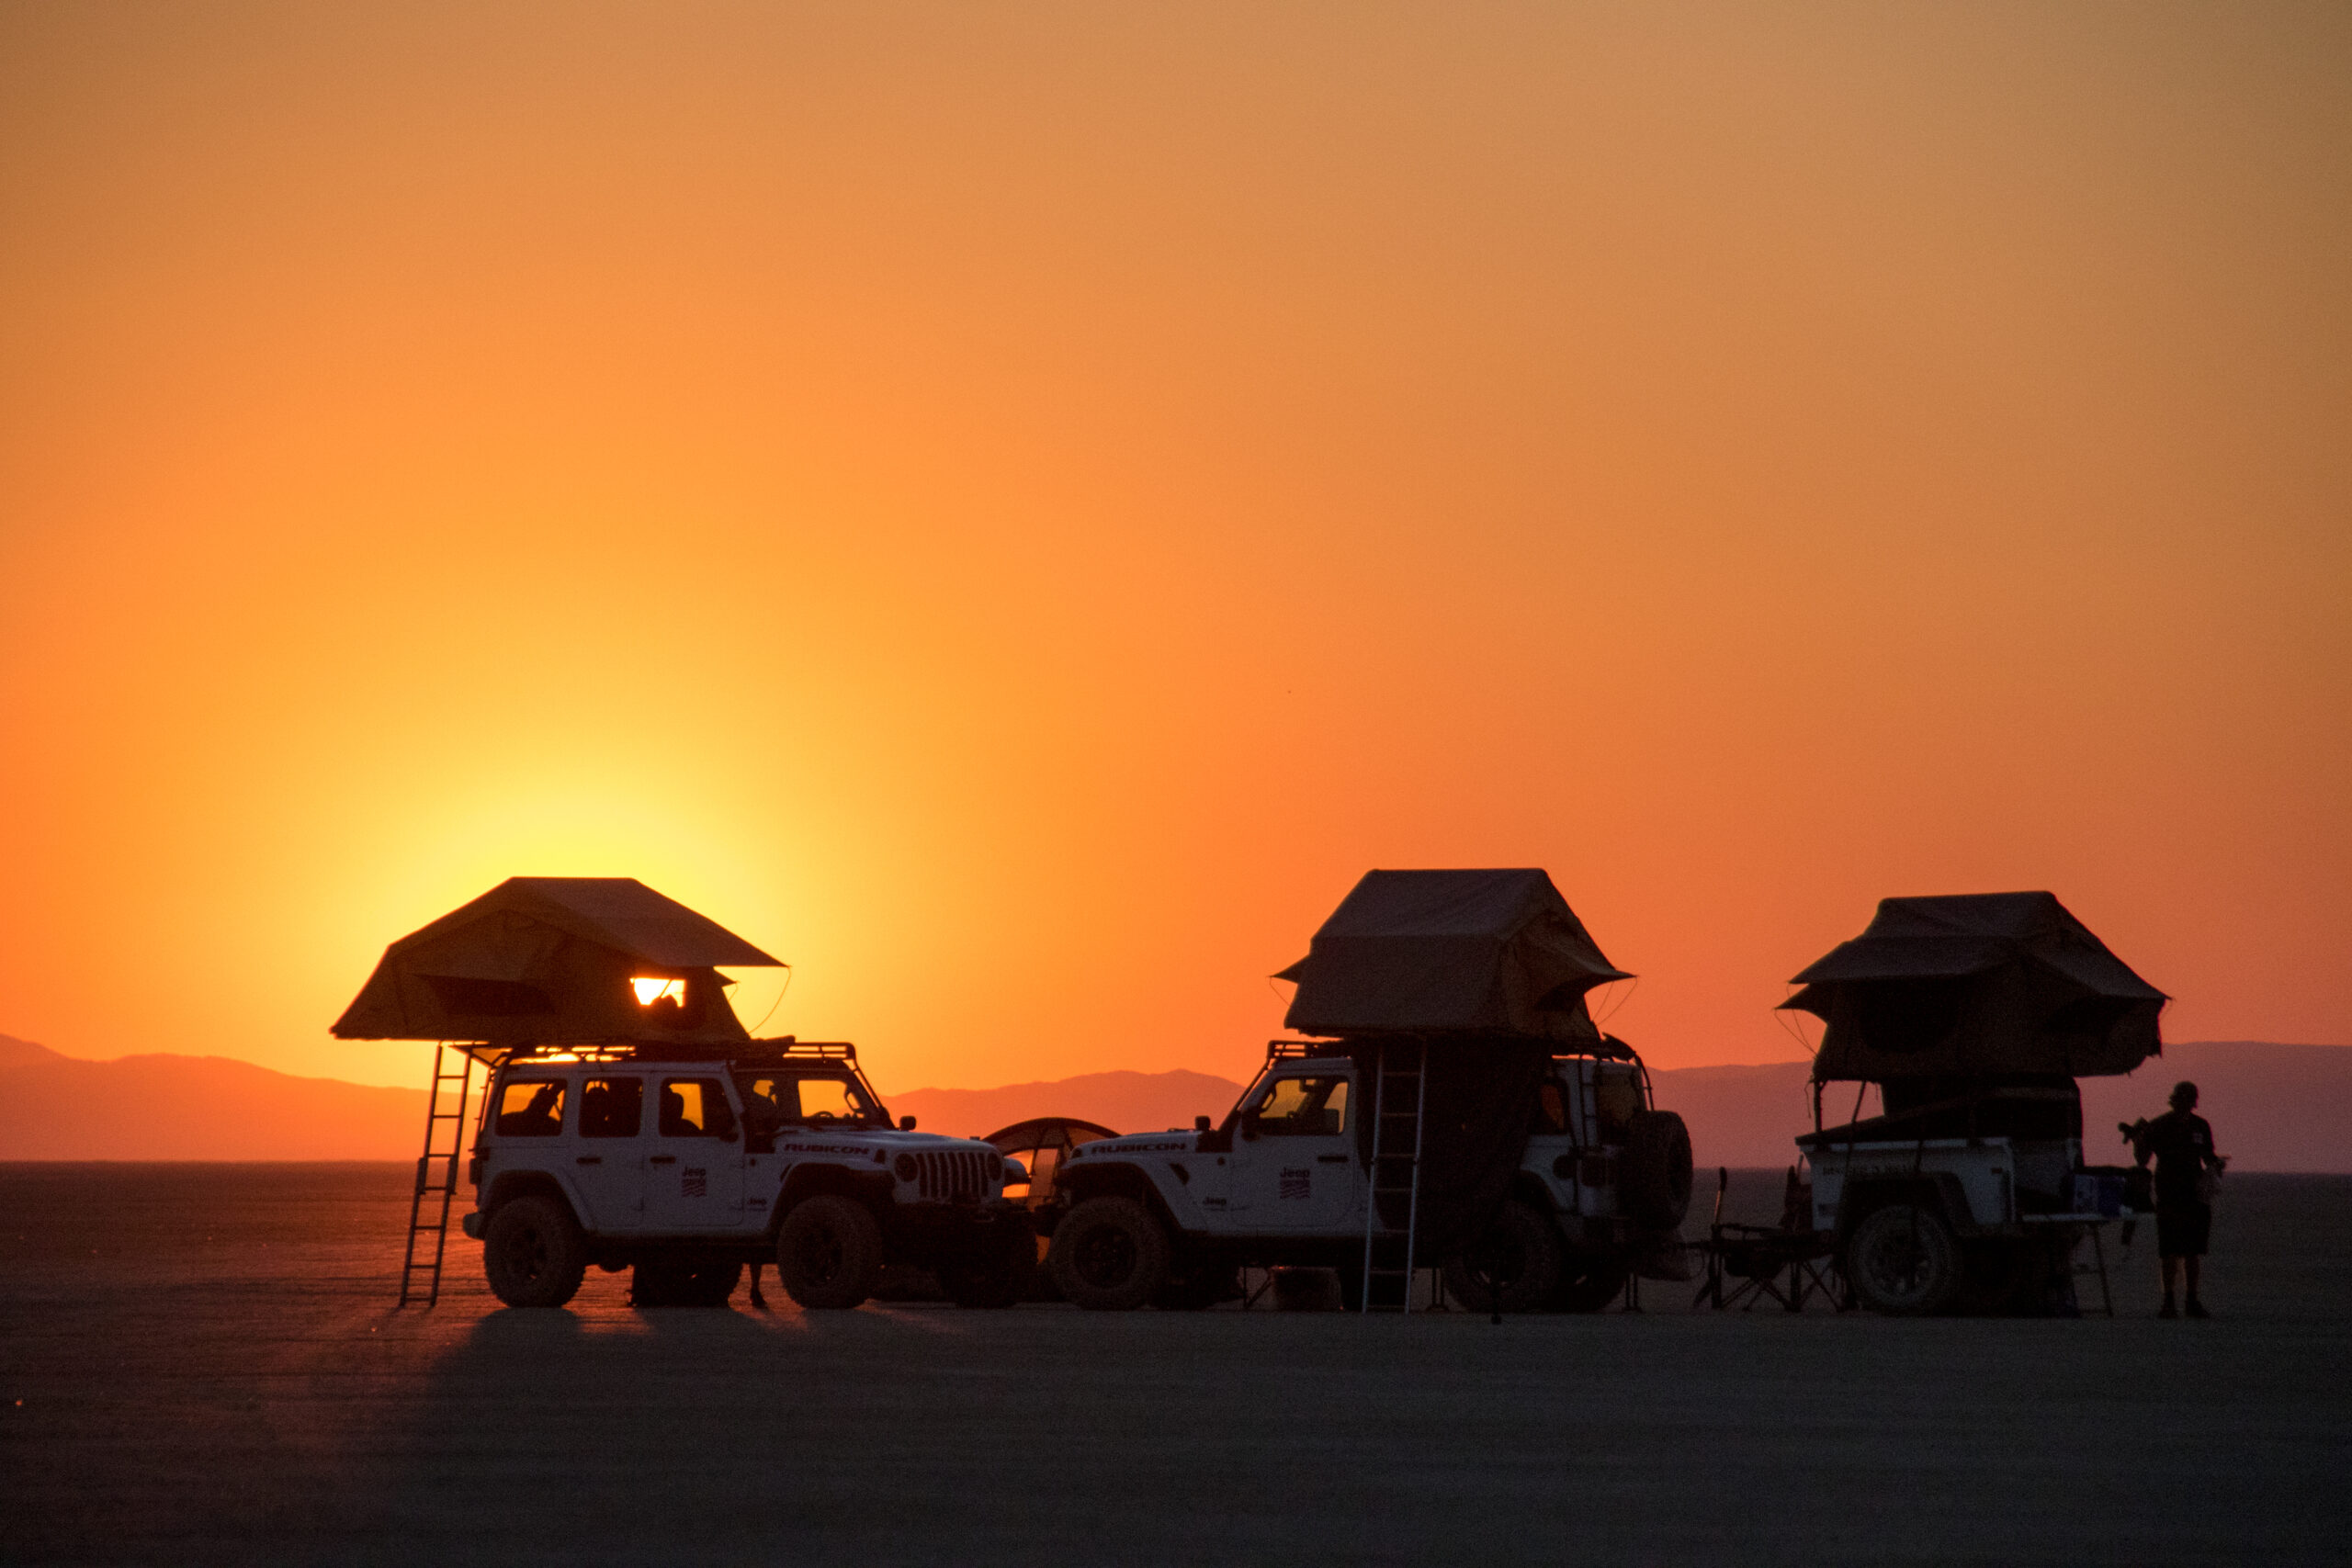 Two jeeps with rooftop tents camp on a dry lake bed at sunset.